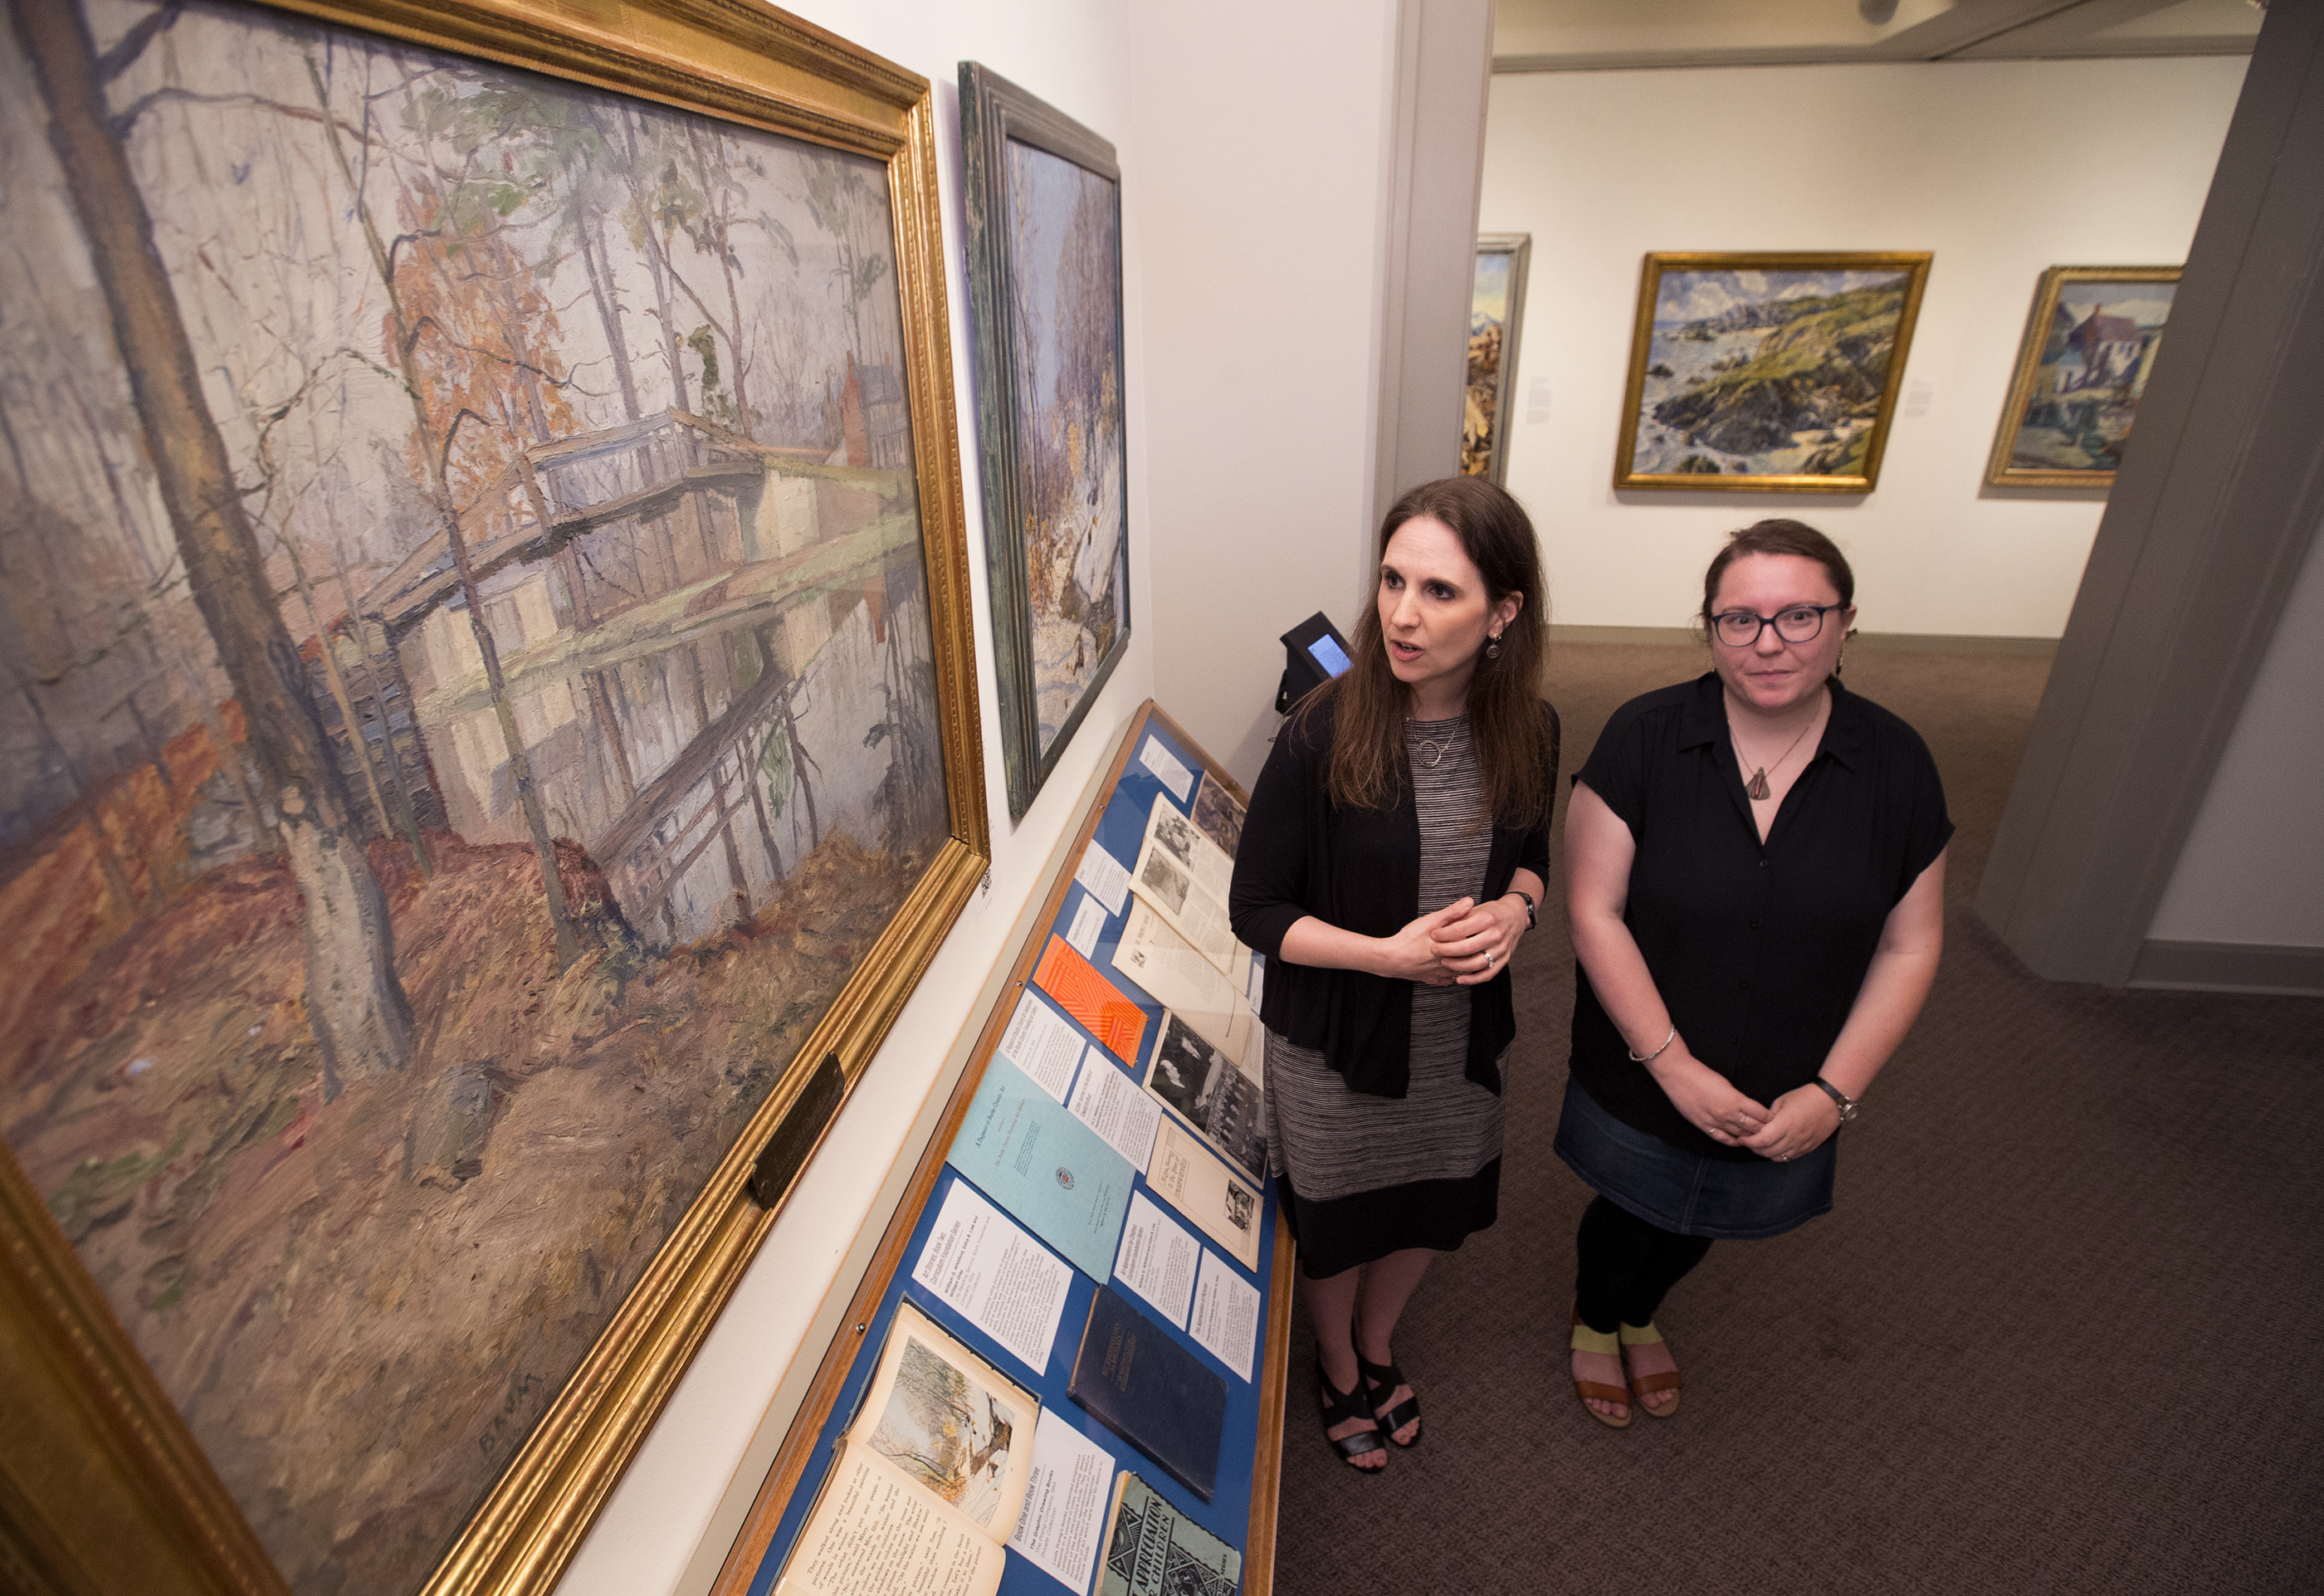 """The Philadelphia School District´s valuable art collection that were abruptly removed from the school walls where they had hung for decades are now part of a new exhibit at the Michener Museum in Doylestown along with on July 13, 2017. Curator Adrienne Neszmelyi-Romano, left, and Assistant Curator Louise Feder, look over """"Canal Near Point Pleasant"""" by Walter Baum, left. It is part of the collection owned by the School District of Philadelphia. CHARLES FOX / Staff Photographer"""